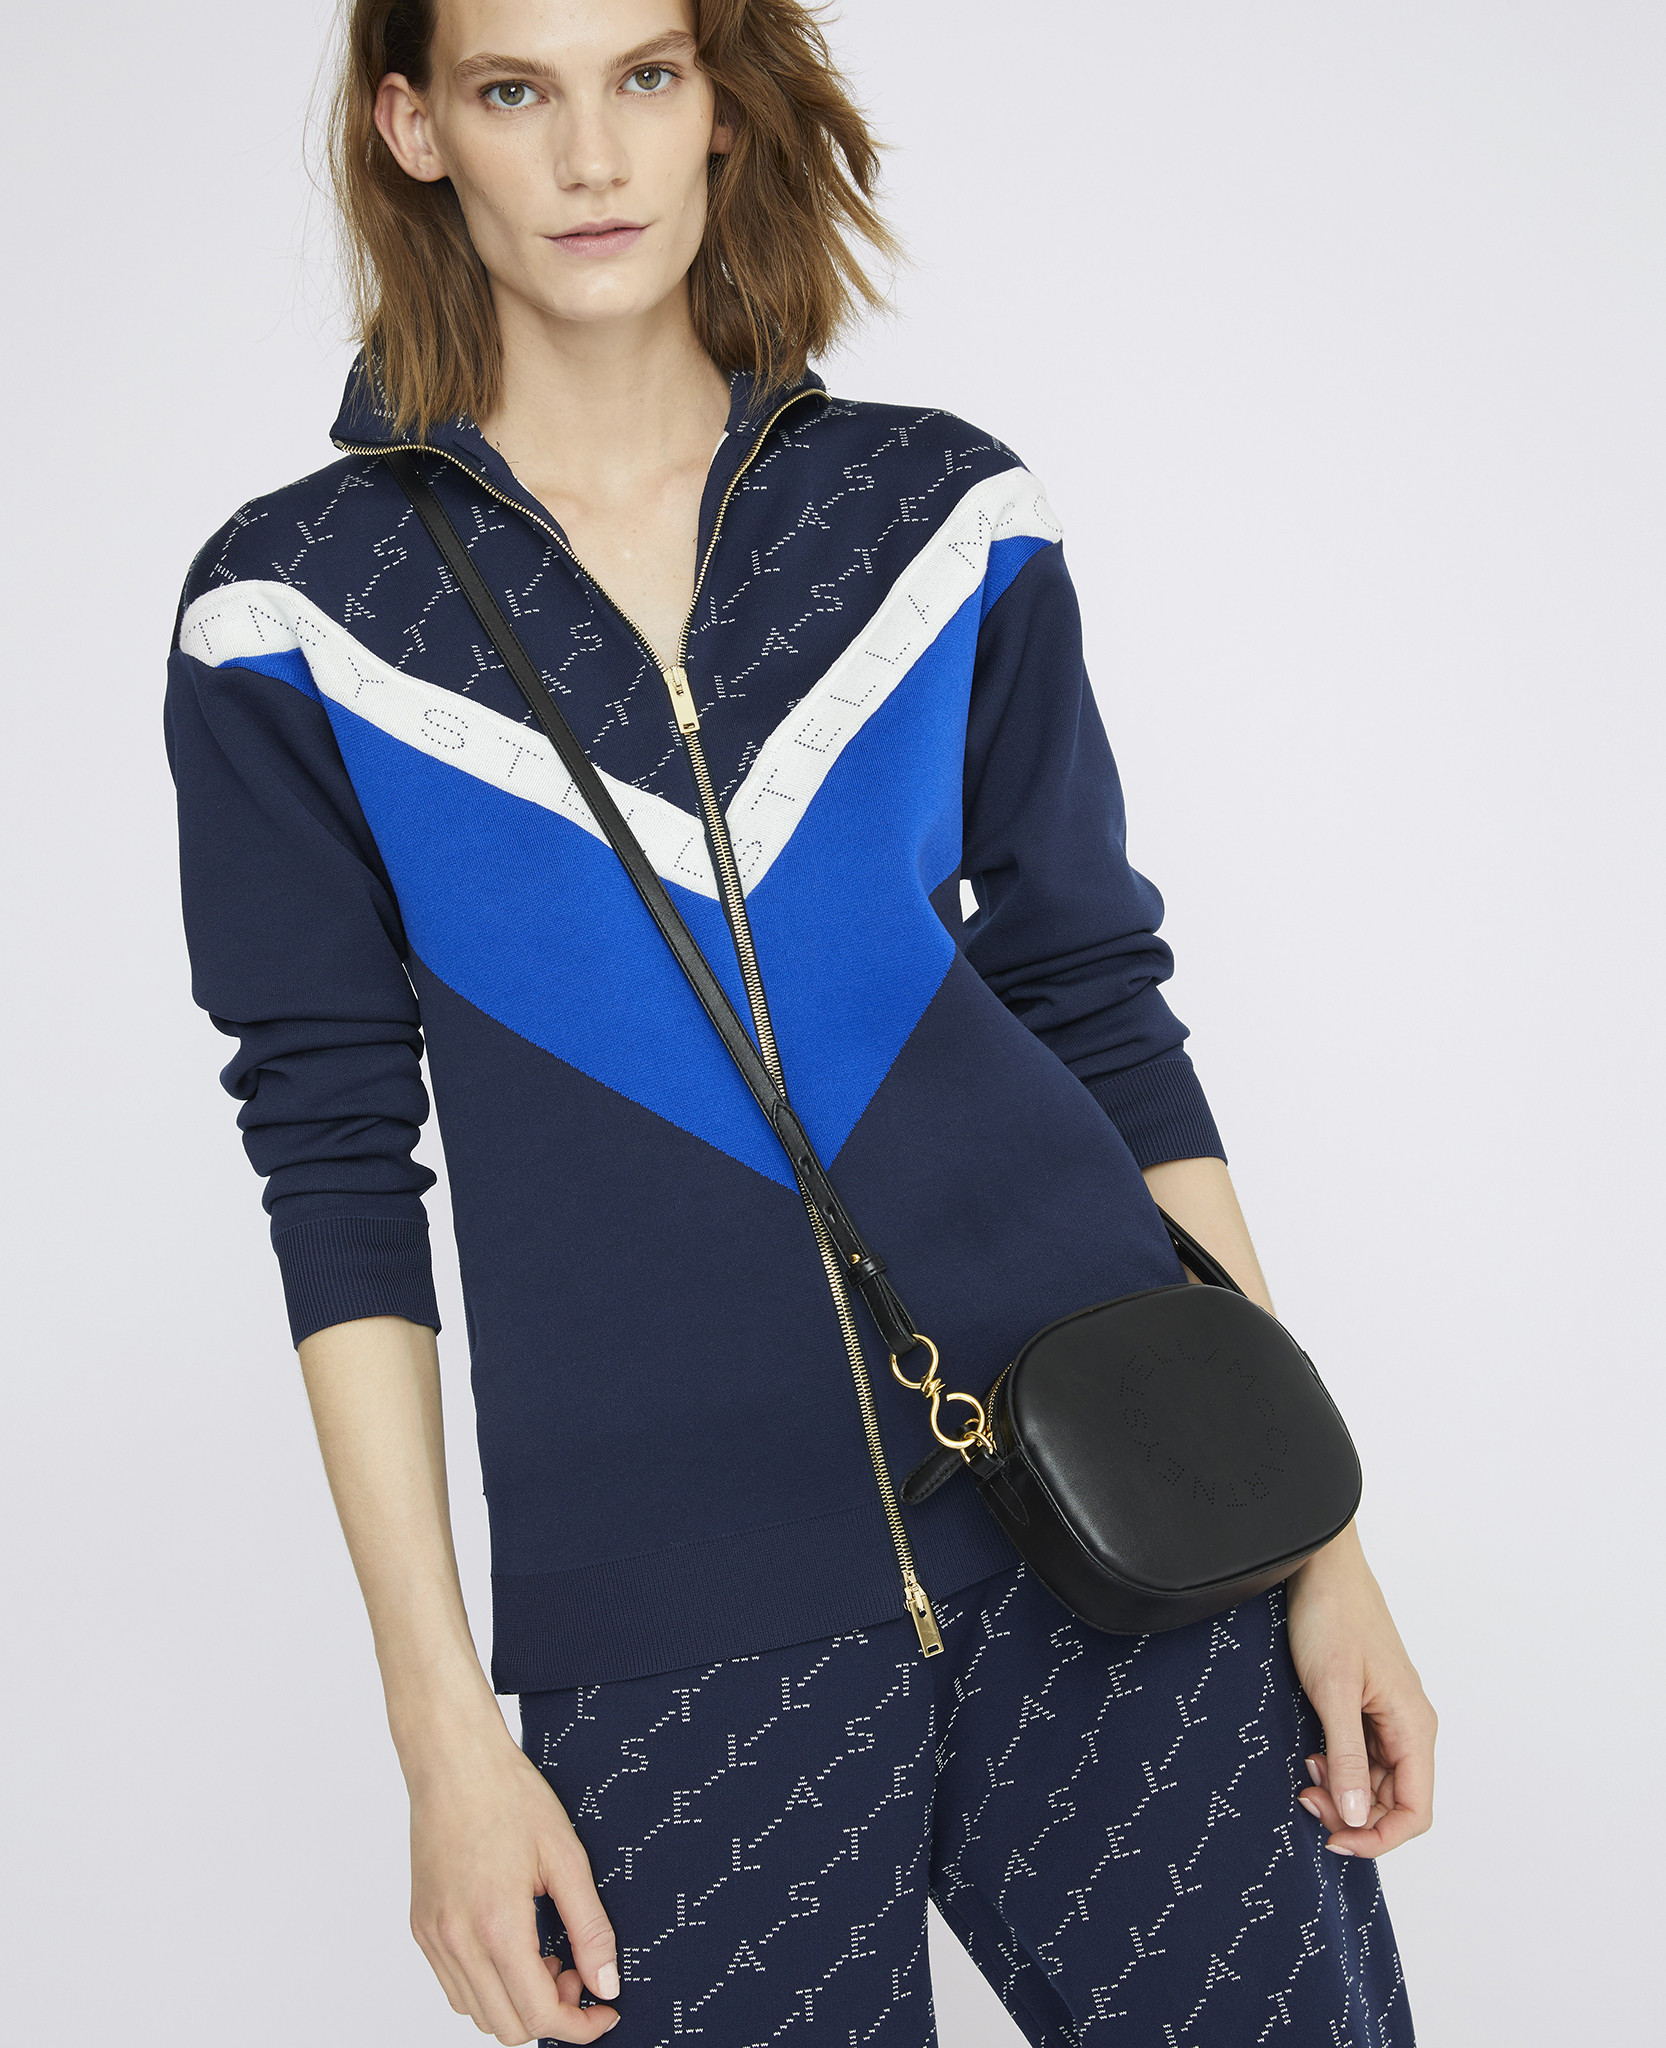 Style Fragment - Stella McCartney Stella Logo Belt Bag 3.jpg